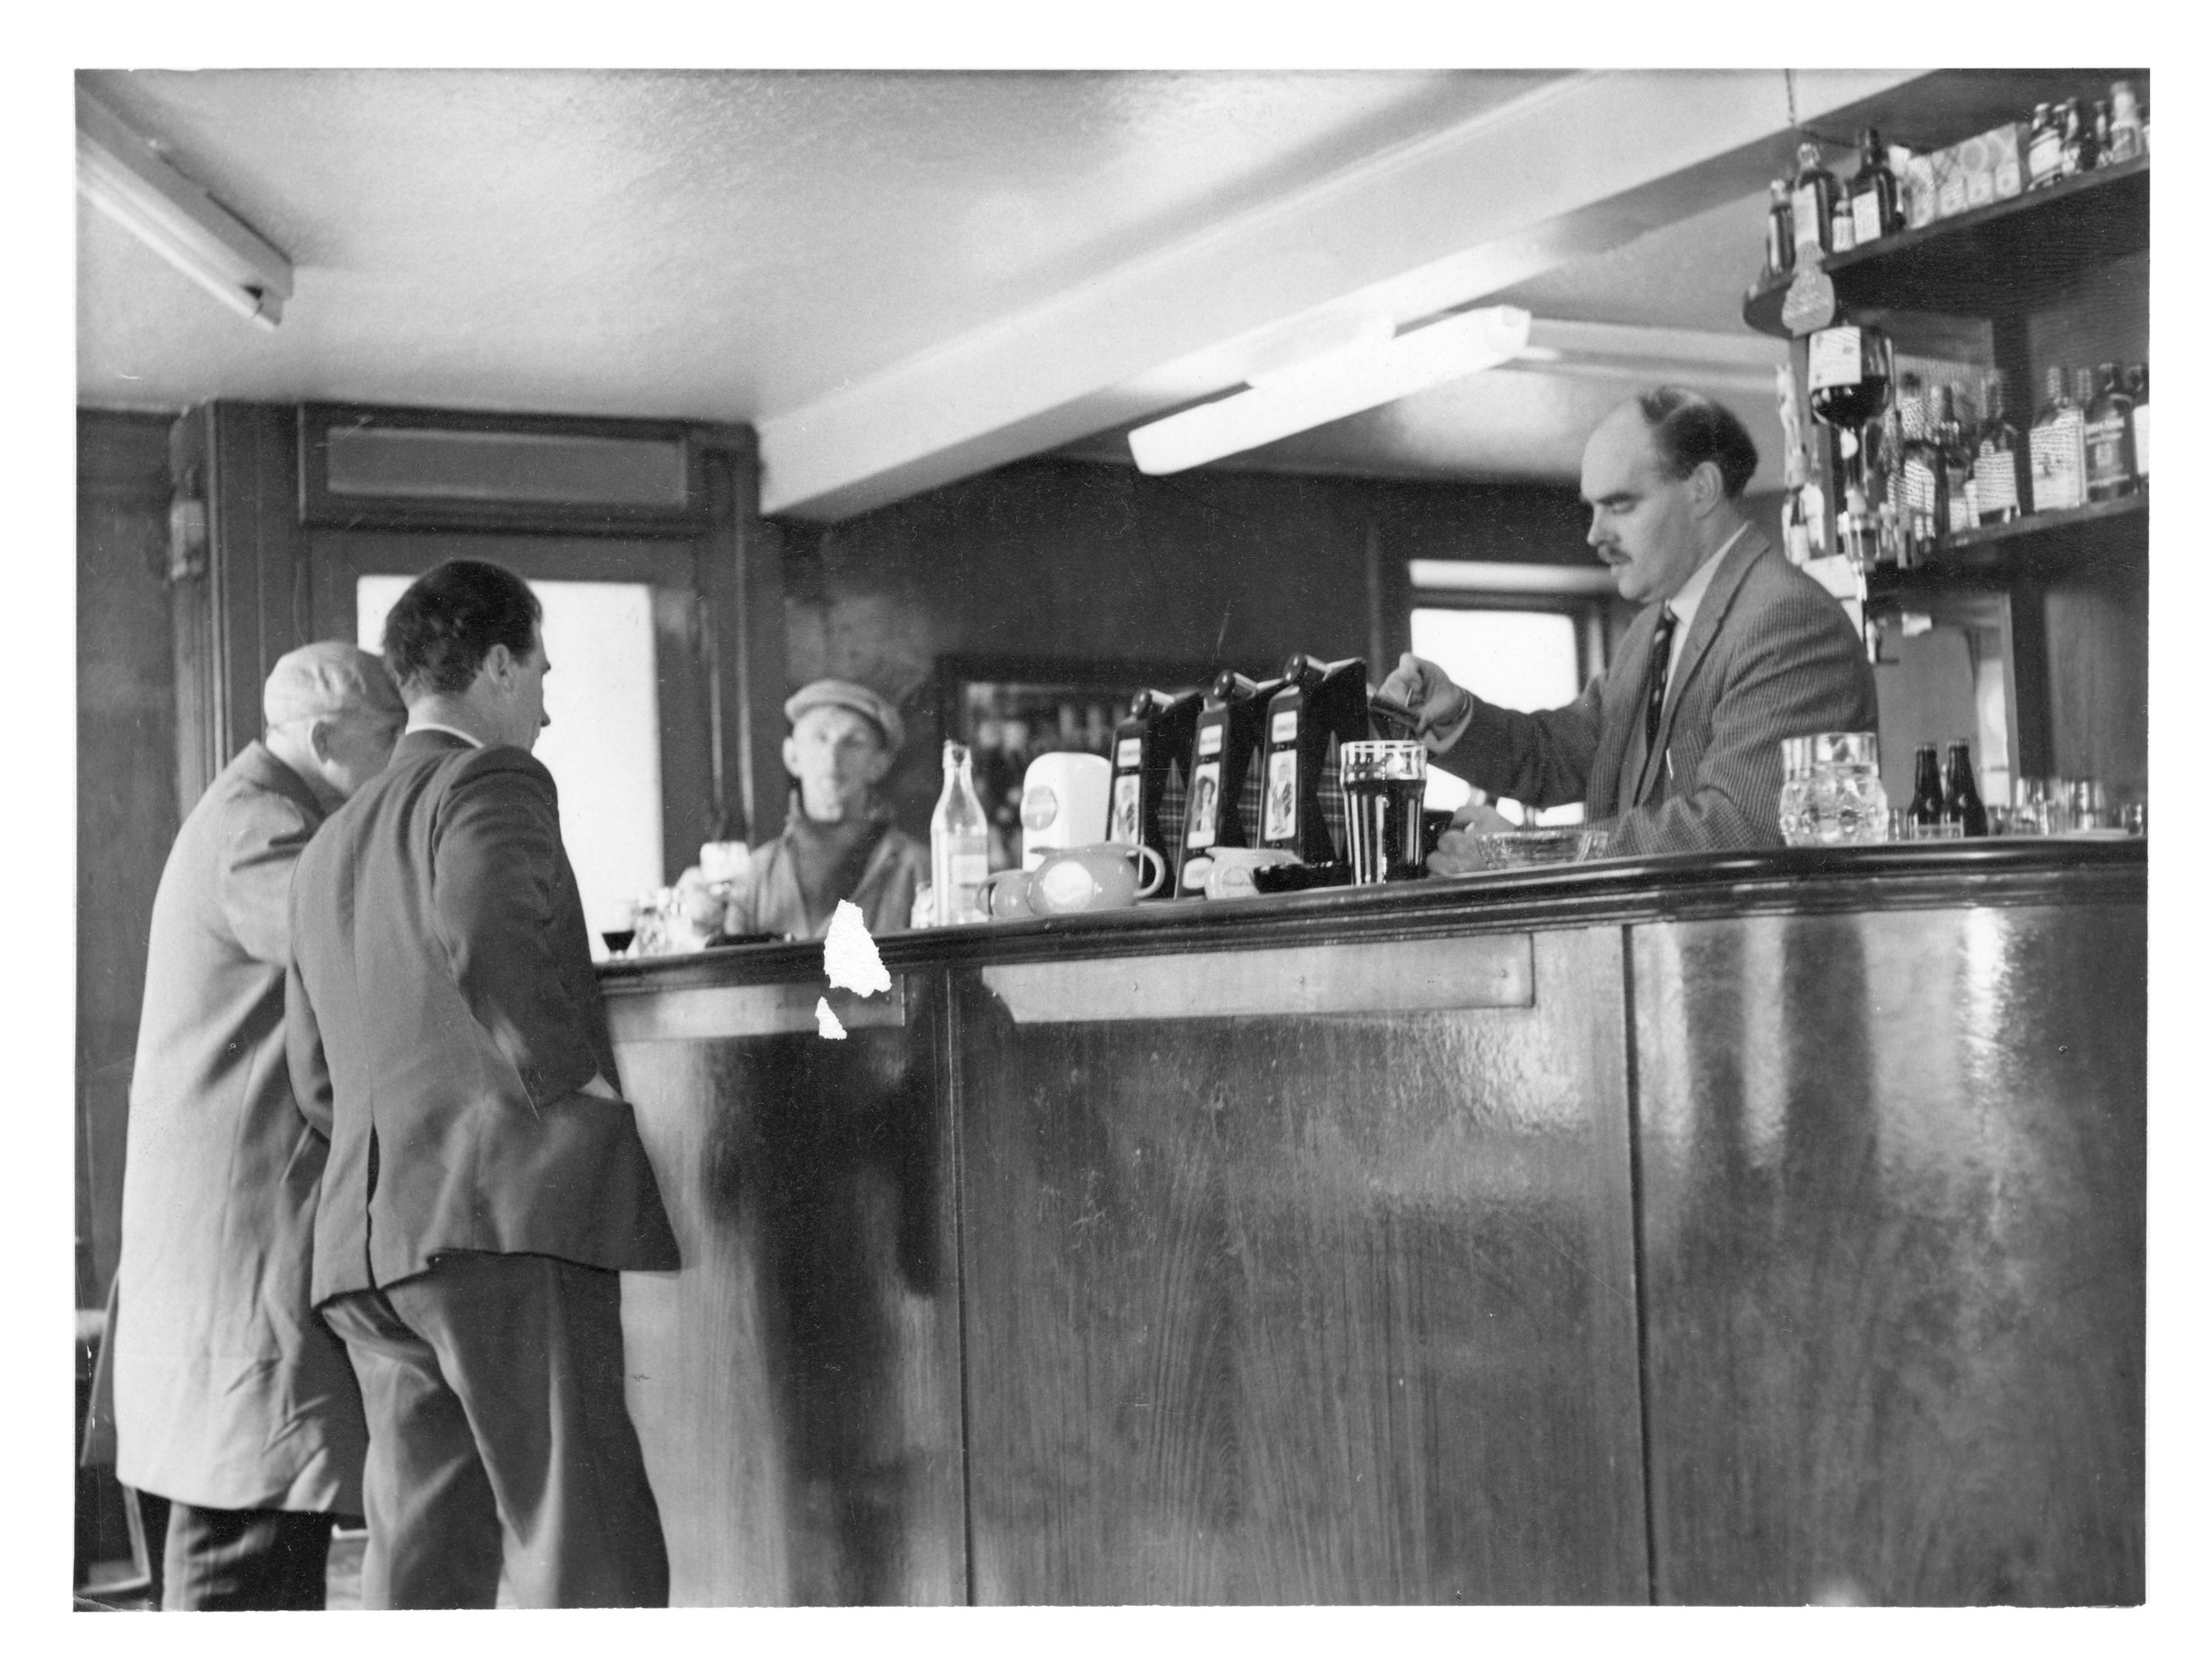 The owner of the St Clement's Bar, William Johnston, pours a pint for a customer in 1965.